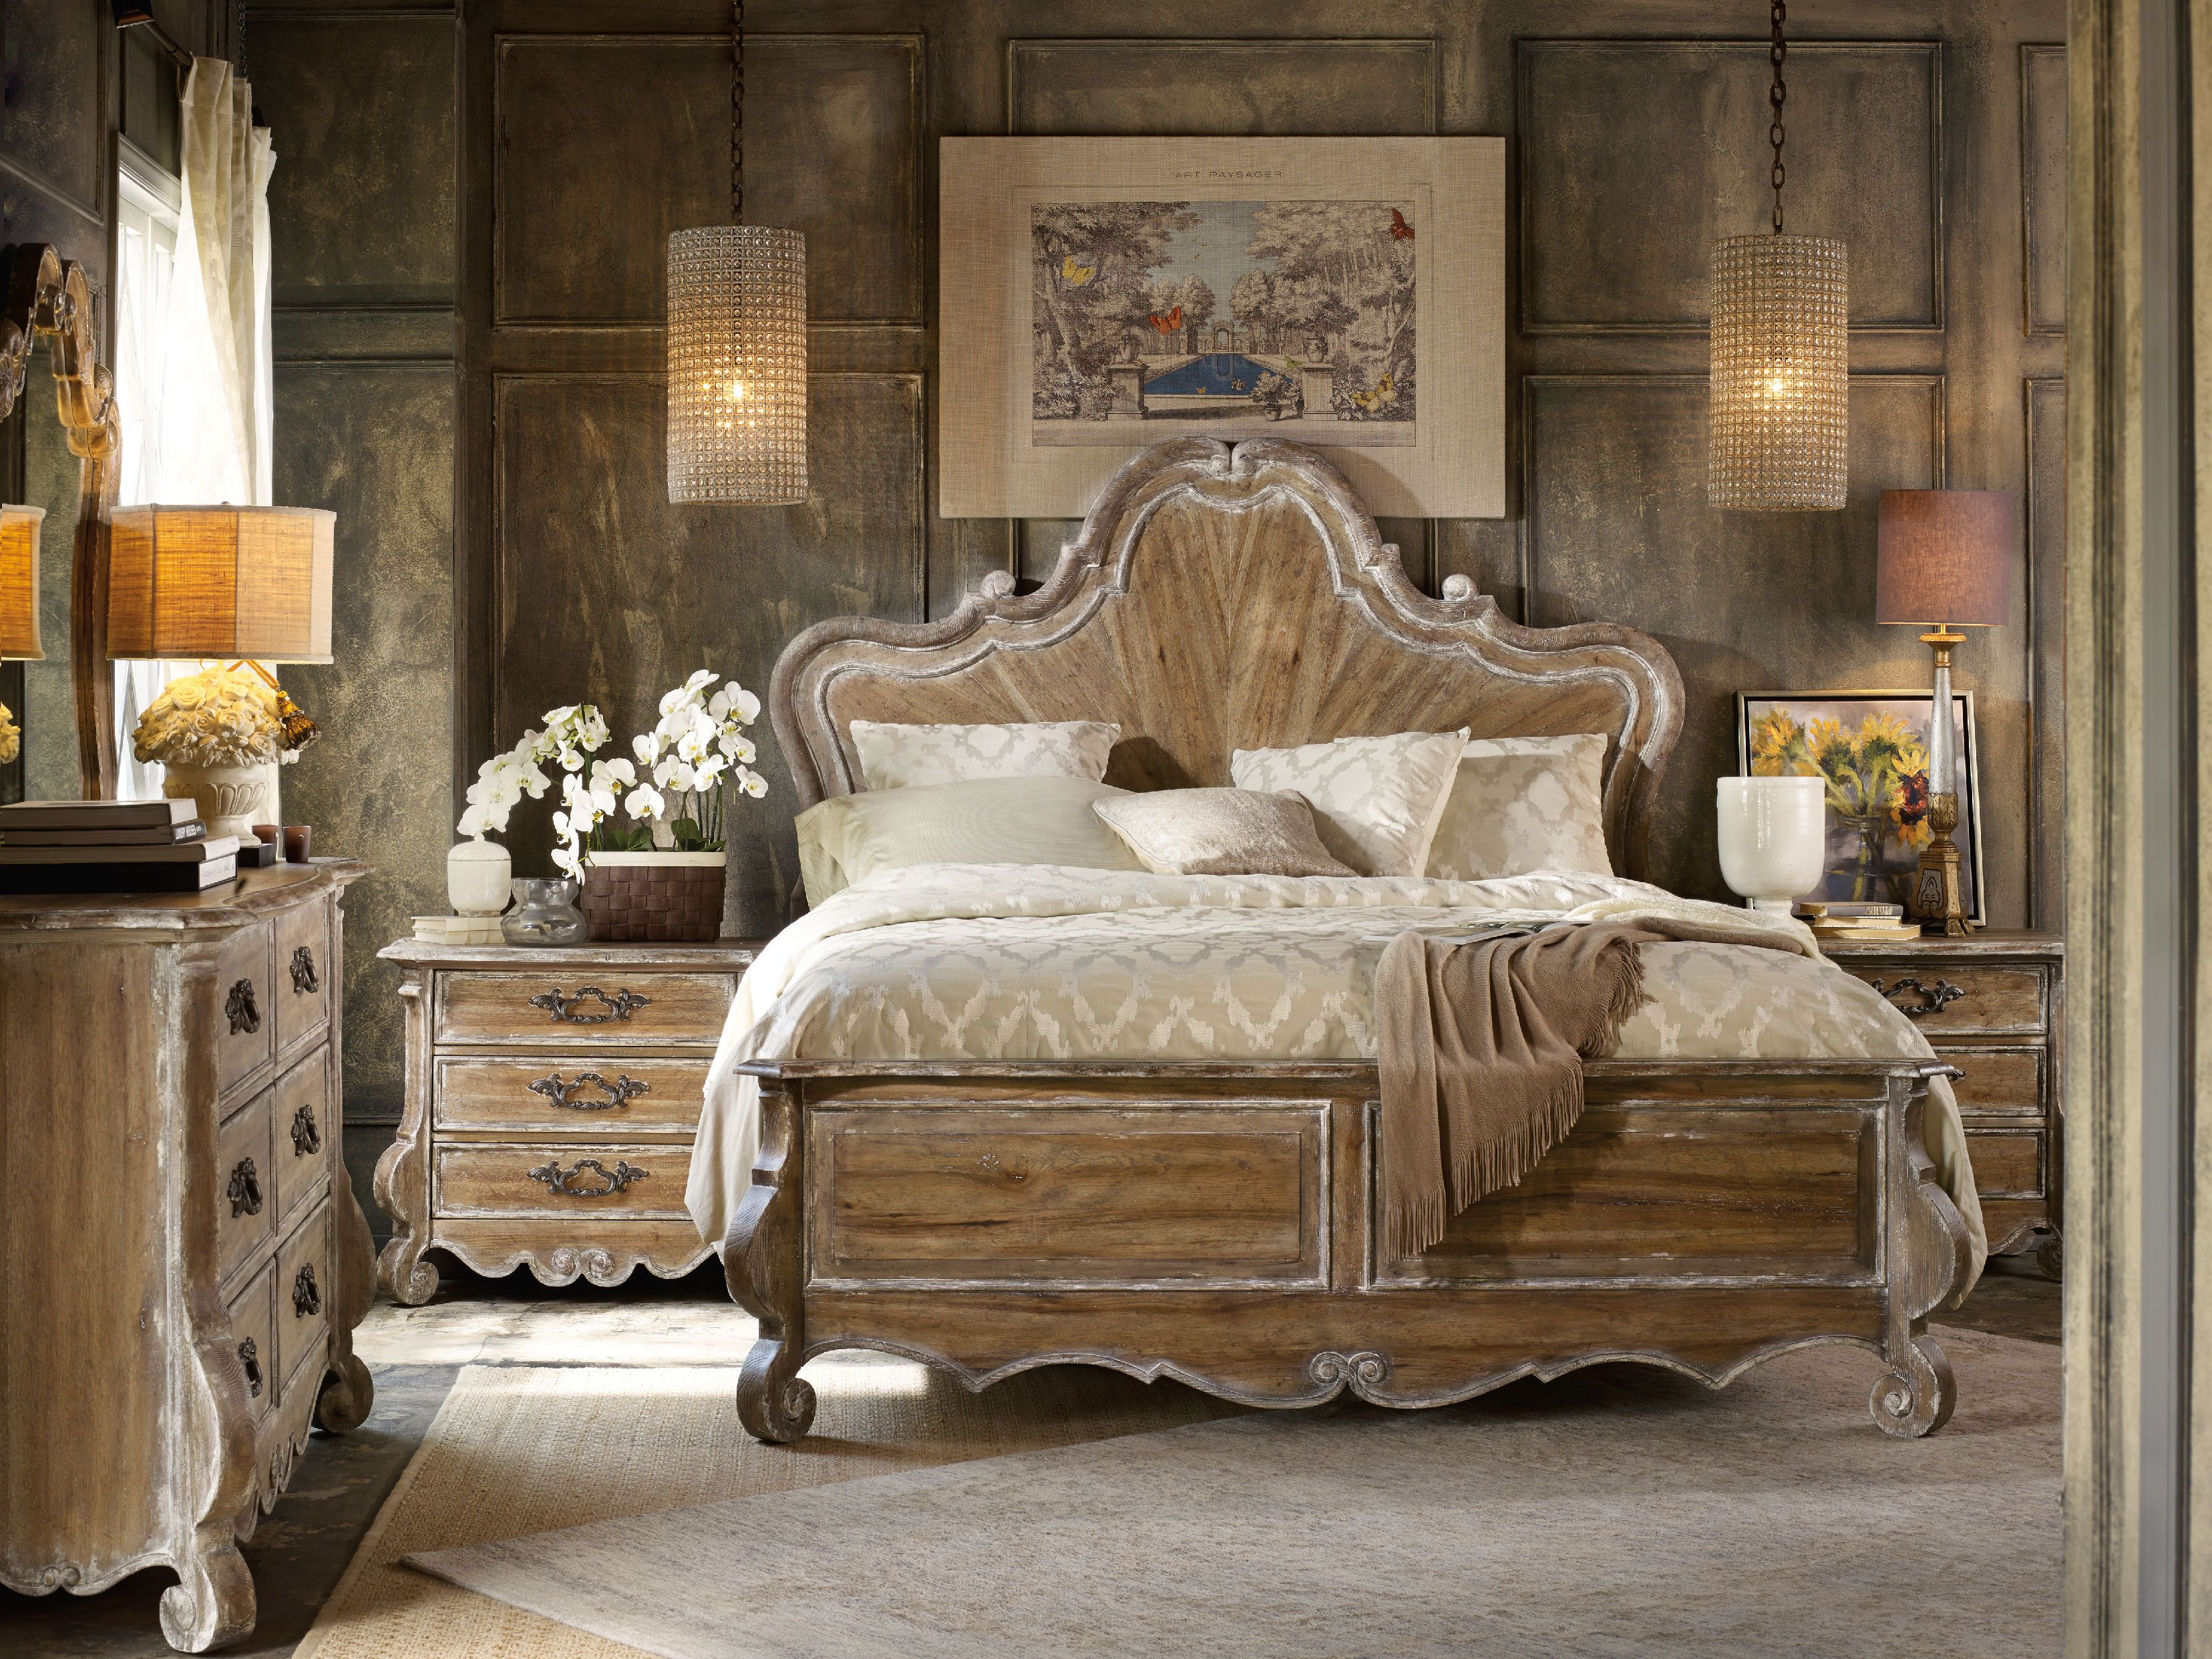 Hooker Furniture Bedroom Chatelet King Wood Panel Bed 5300-90266 ...